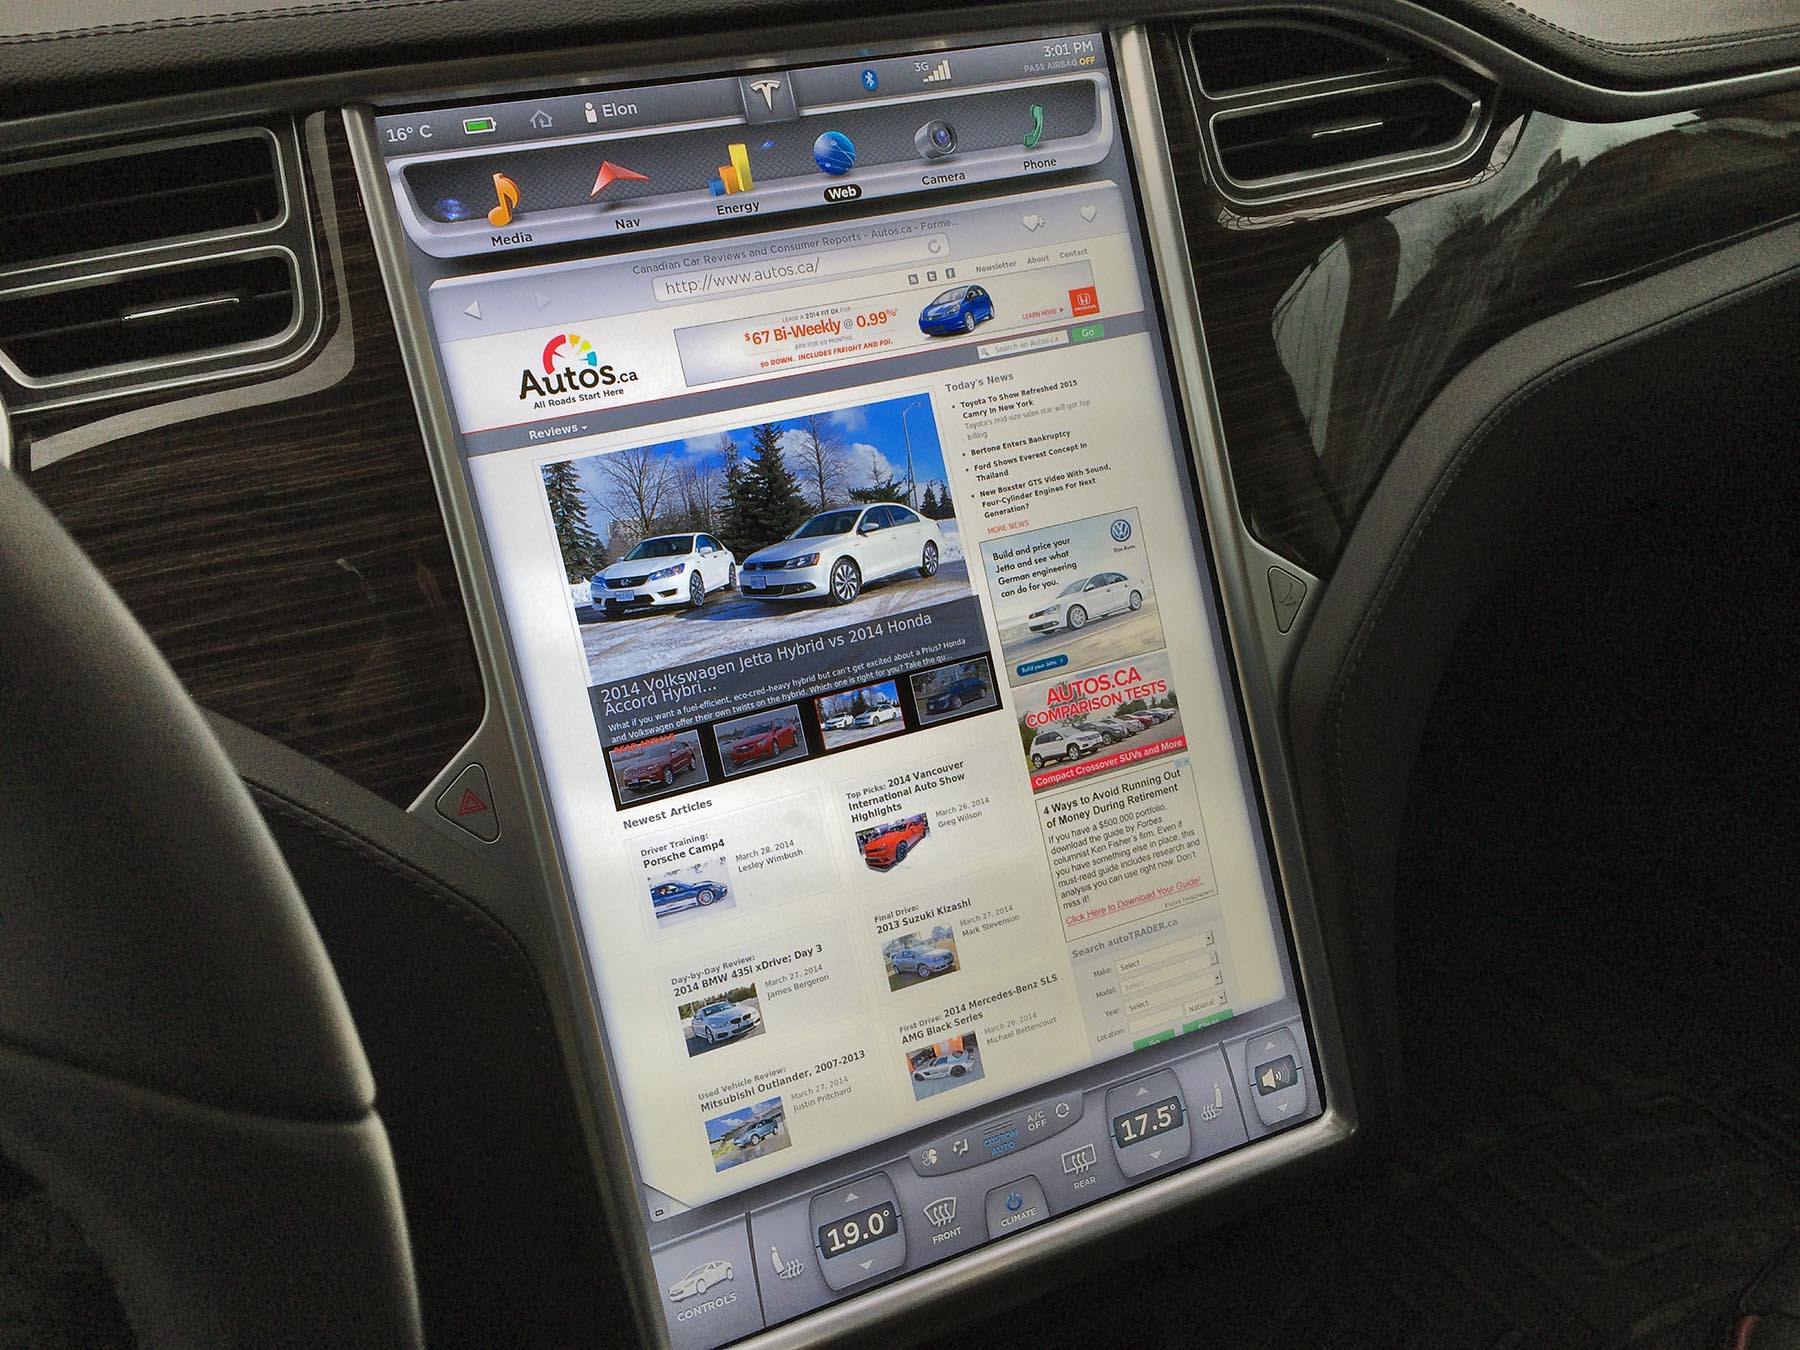 "No futuristic cars list would be complete without the Tesla Model S, the car The Oatmeal calls his ""Intergalactic SpaceBoat of Light and Wonder"". Knobs and buttons are a thing of the past, and almost all interior functions are controlled via a giant 17-inch customizable touchscreen. Yeah, pretty rad."